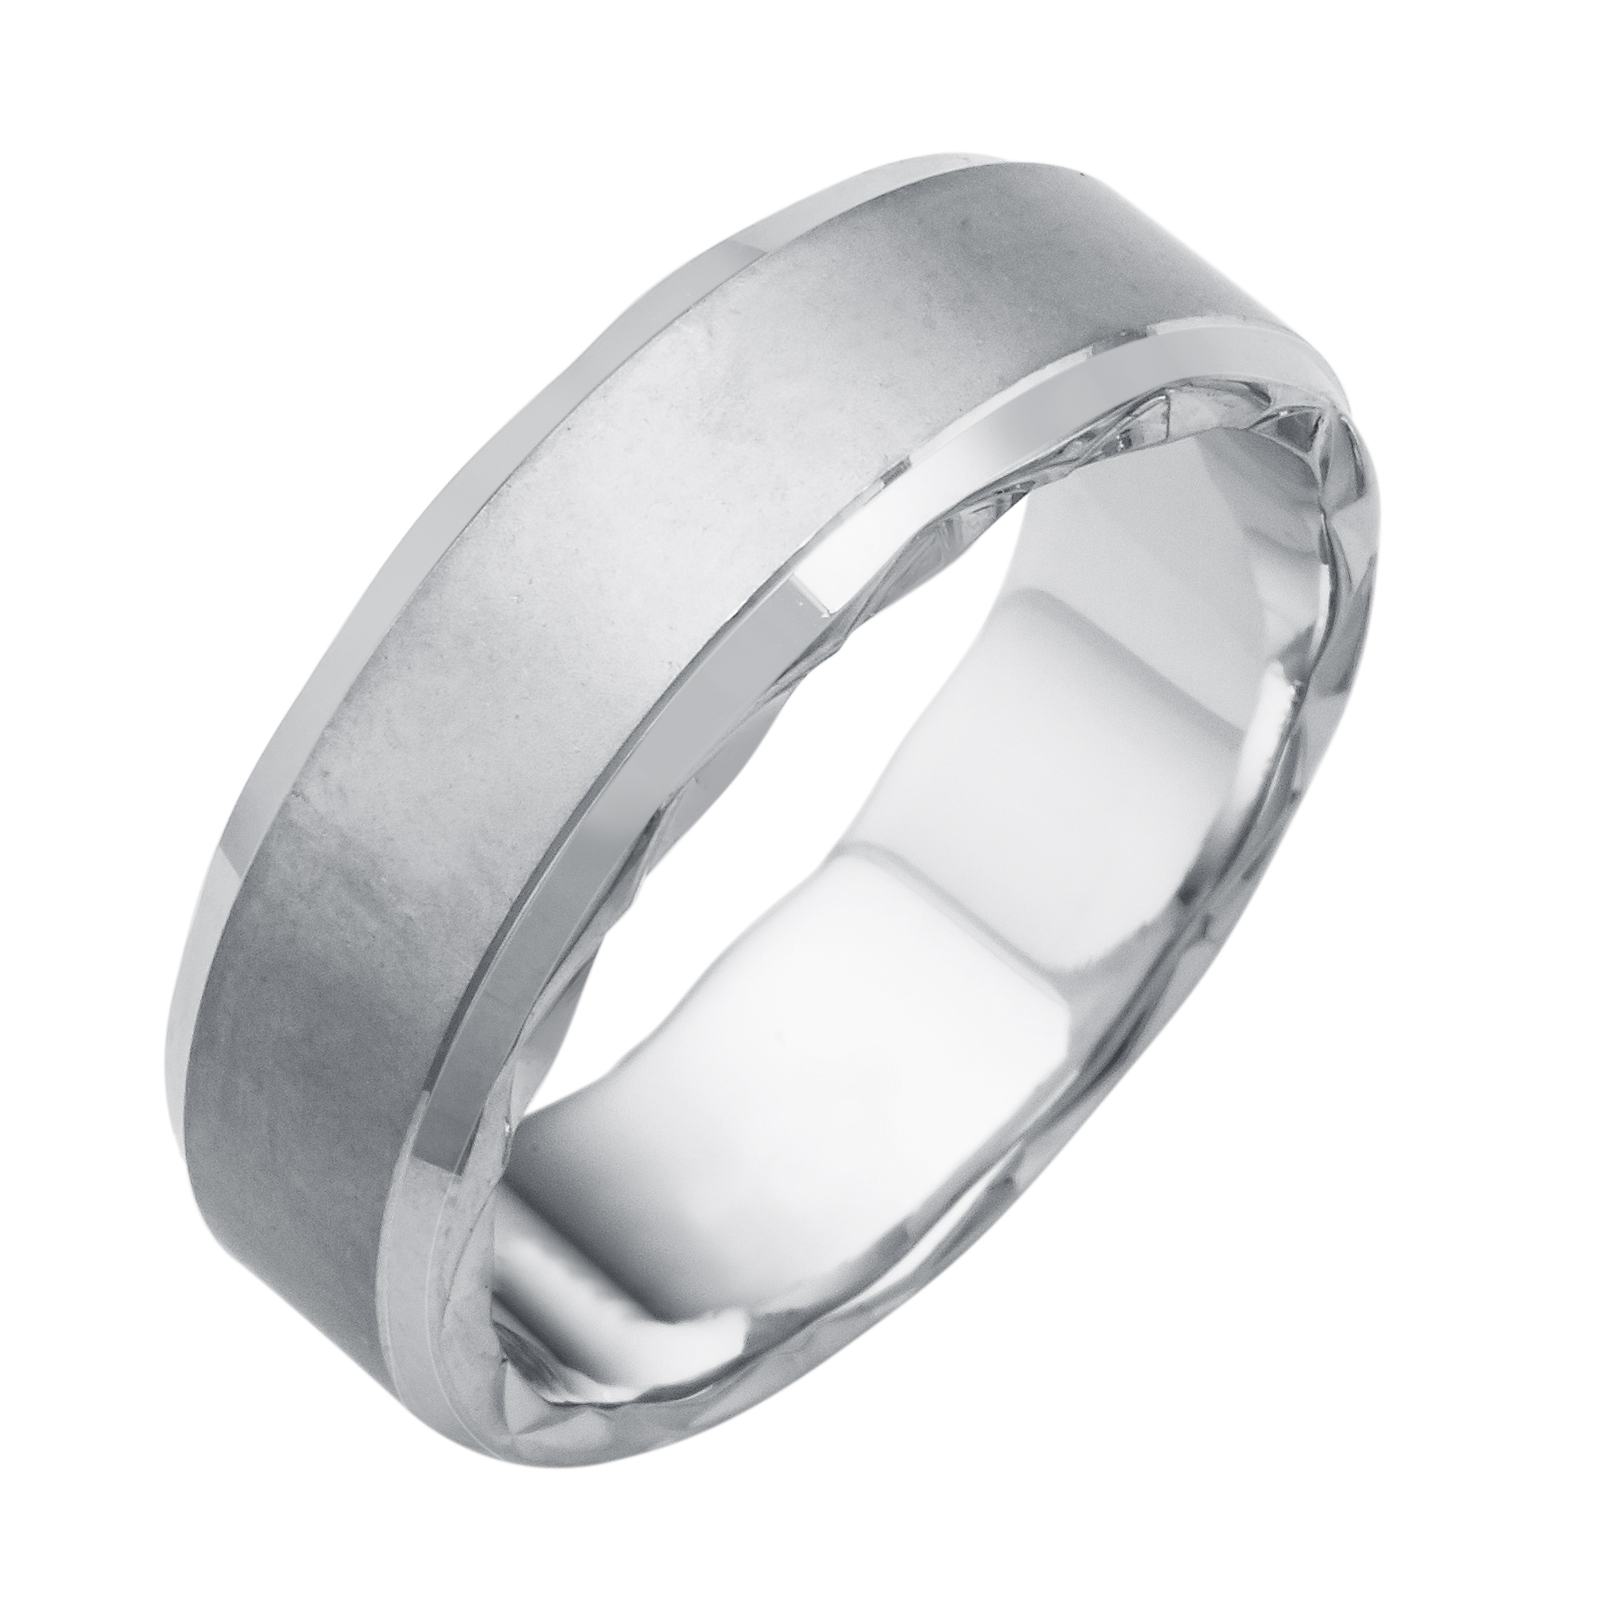 wedding mens s ring jewelry men beveled designs rings category product